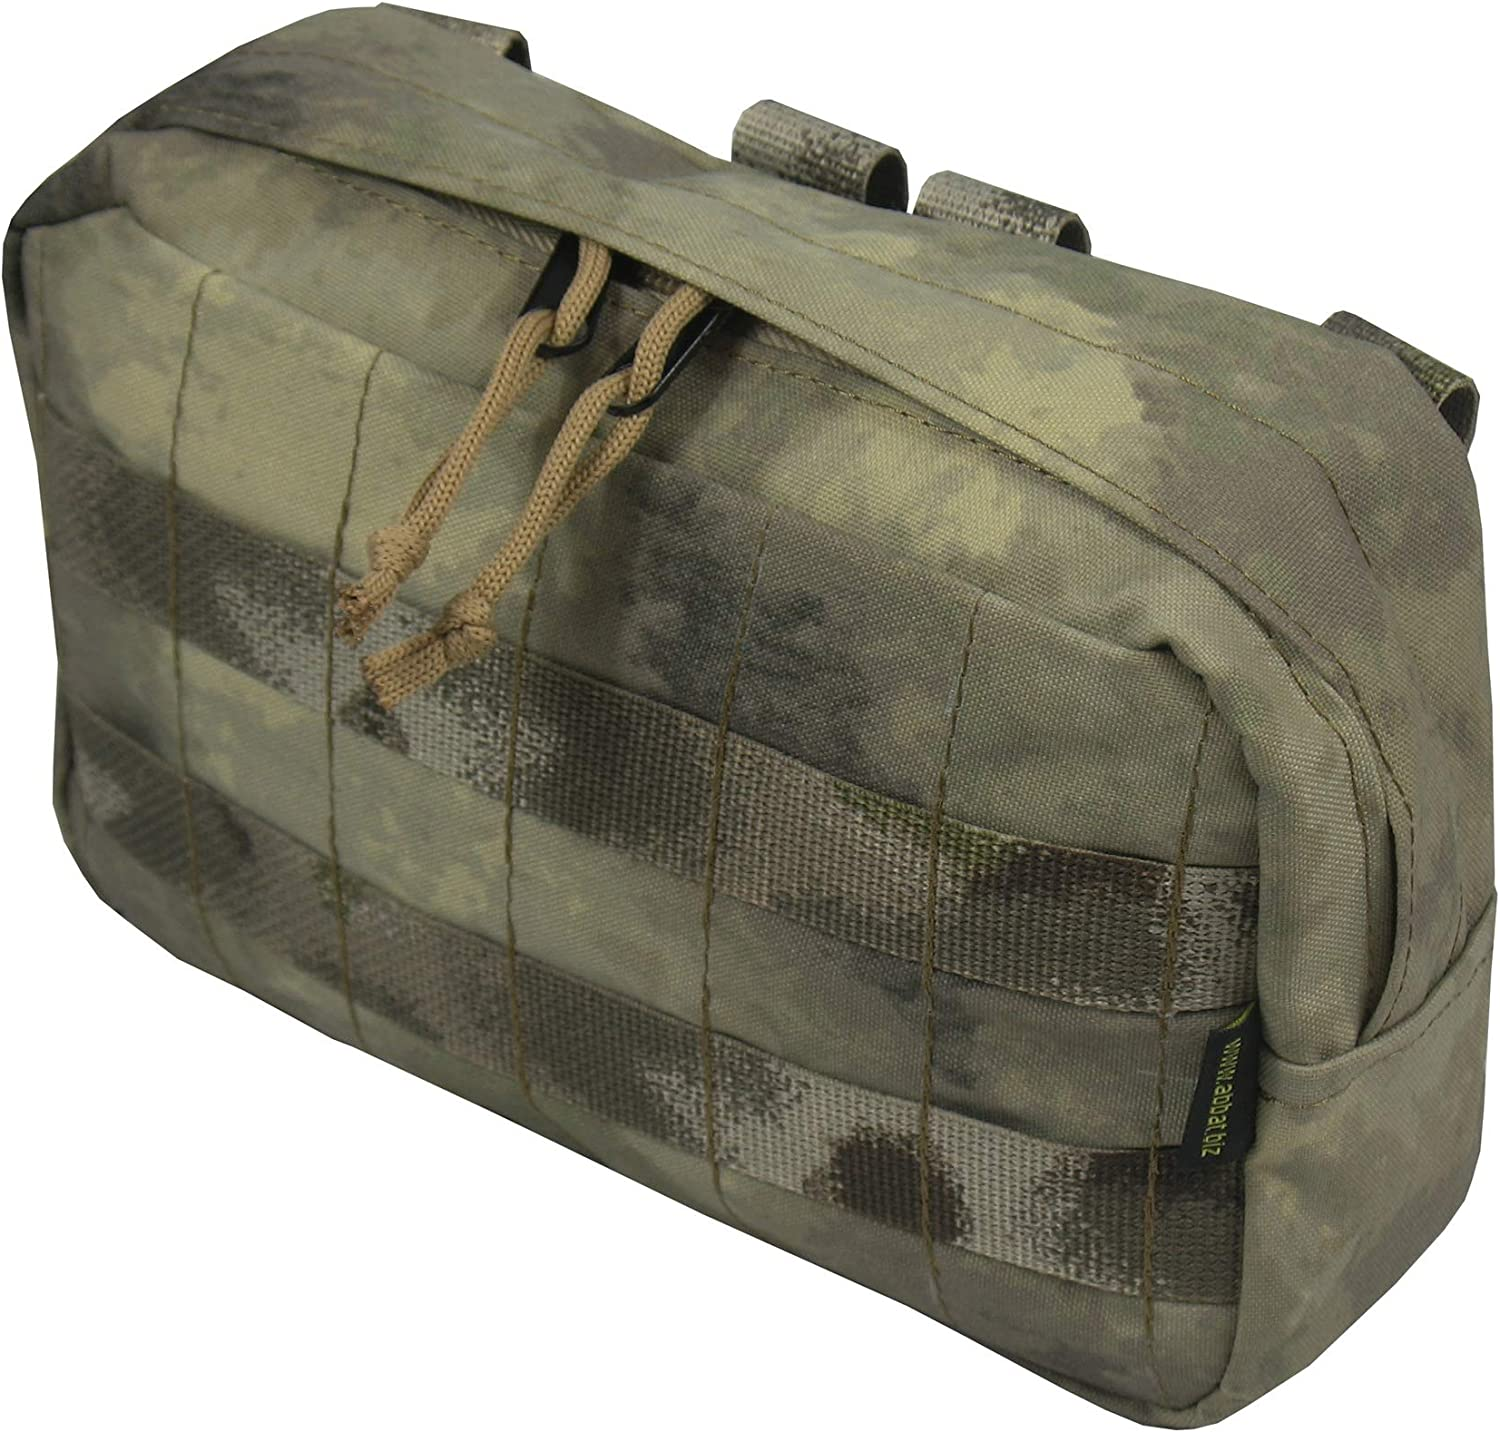 MOLLE Tactical Pouch Bag Equipment EDC Mail order cheap Utility Tool At Organizer Max 52% OFF